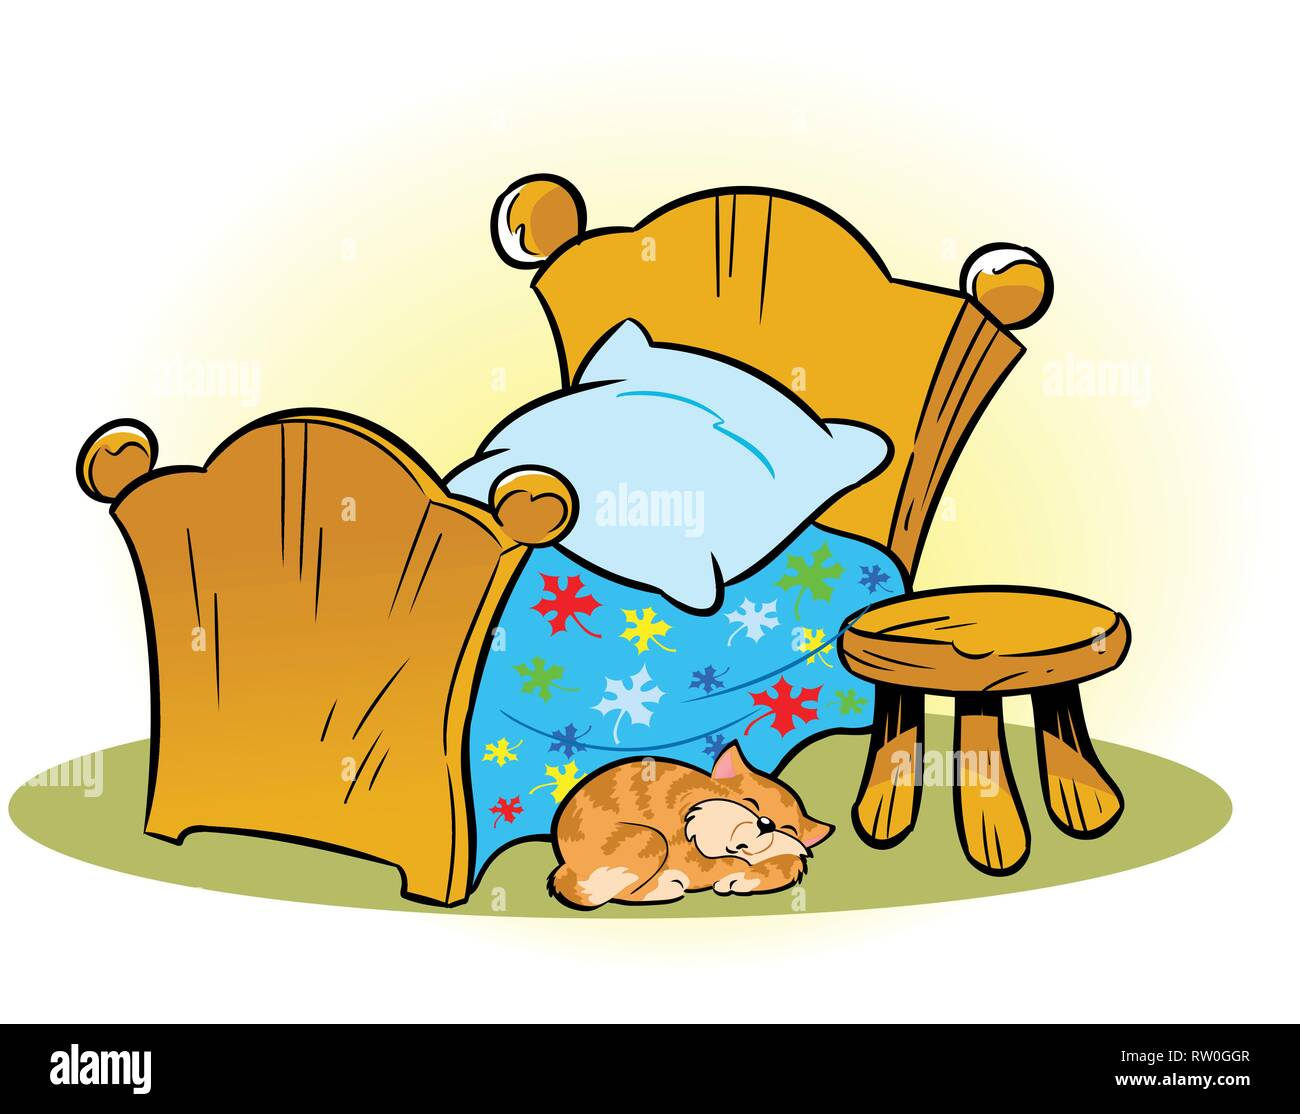 The illustration shows a small wooden bed and a chair. On the floor, sleeping pet cat. Illustration done on separate layers in a cartoon style. Stock Vector